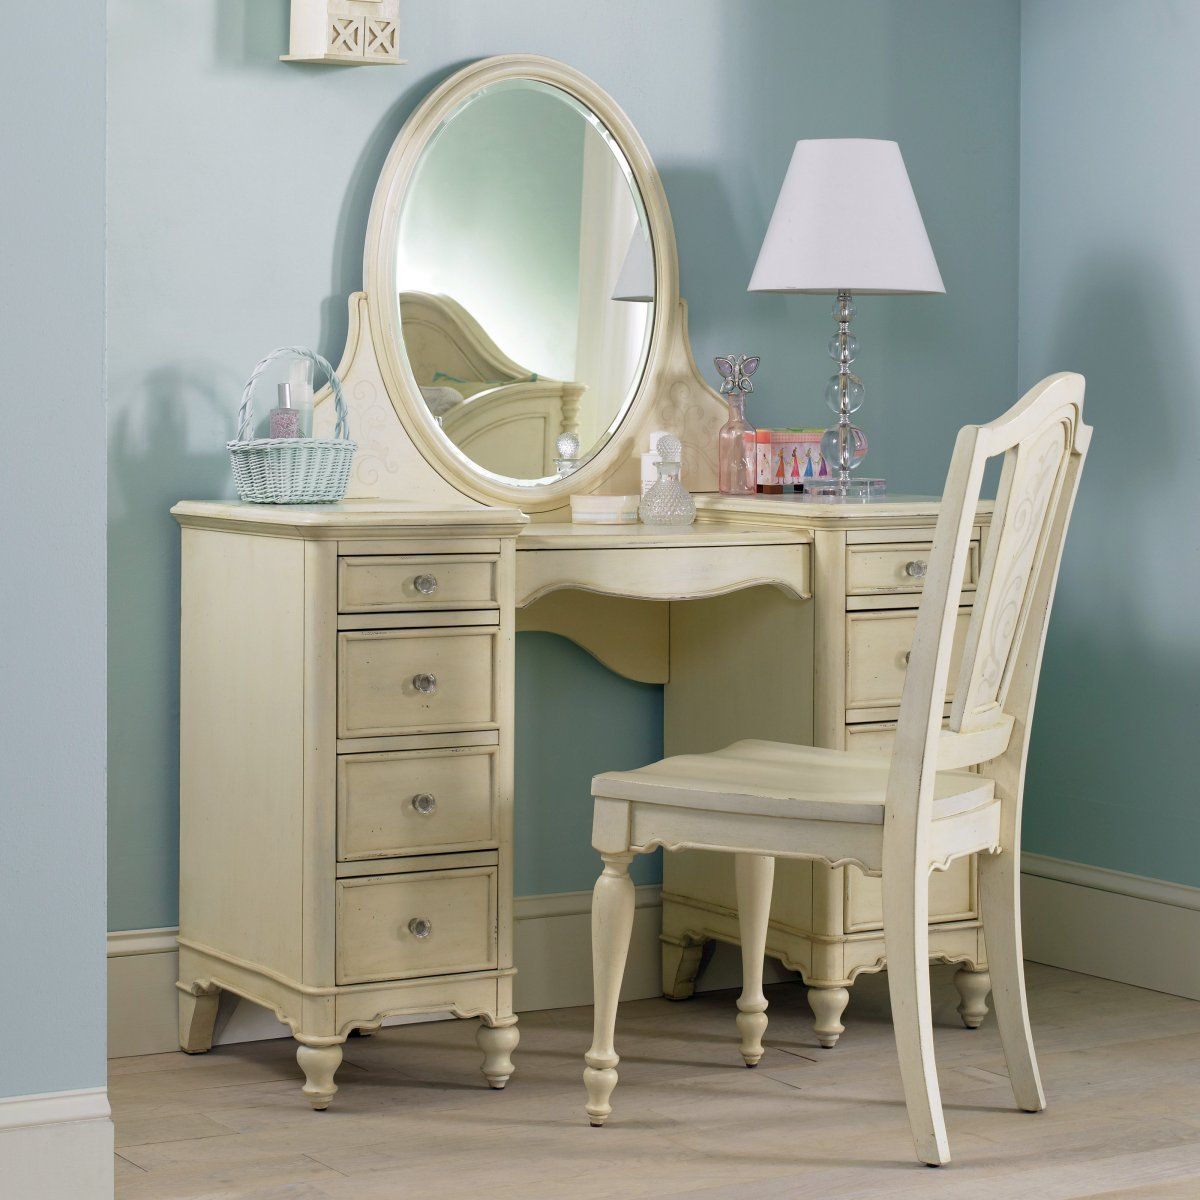 Picture of: Vanity with Mirror Over Budget